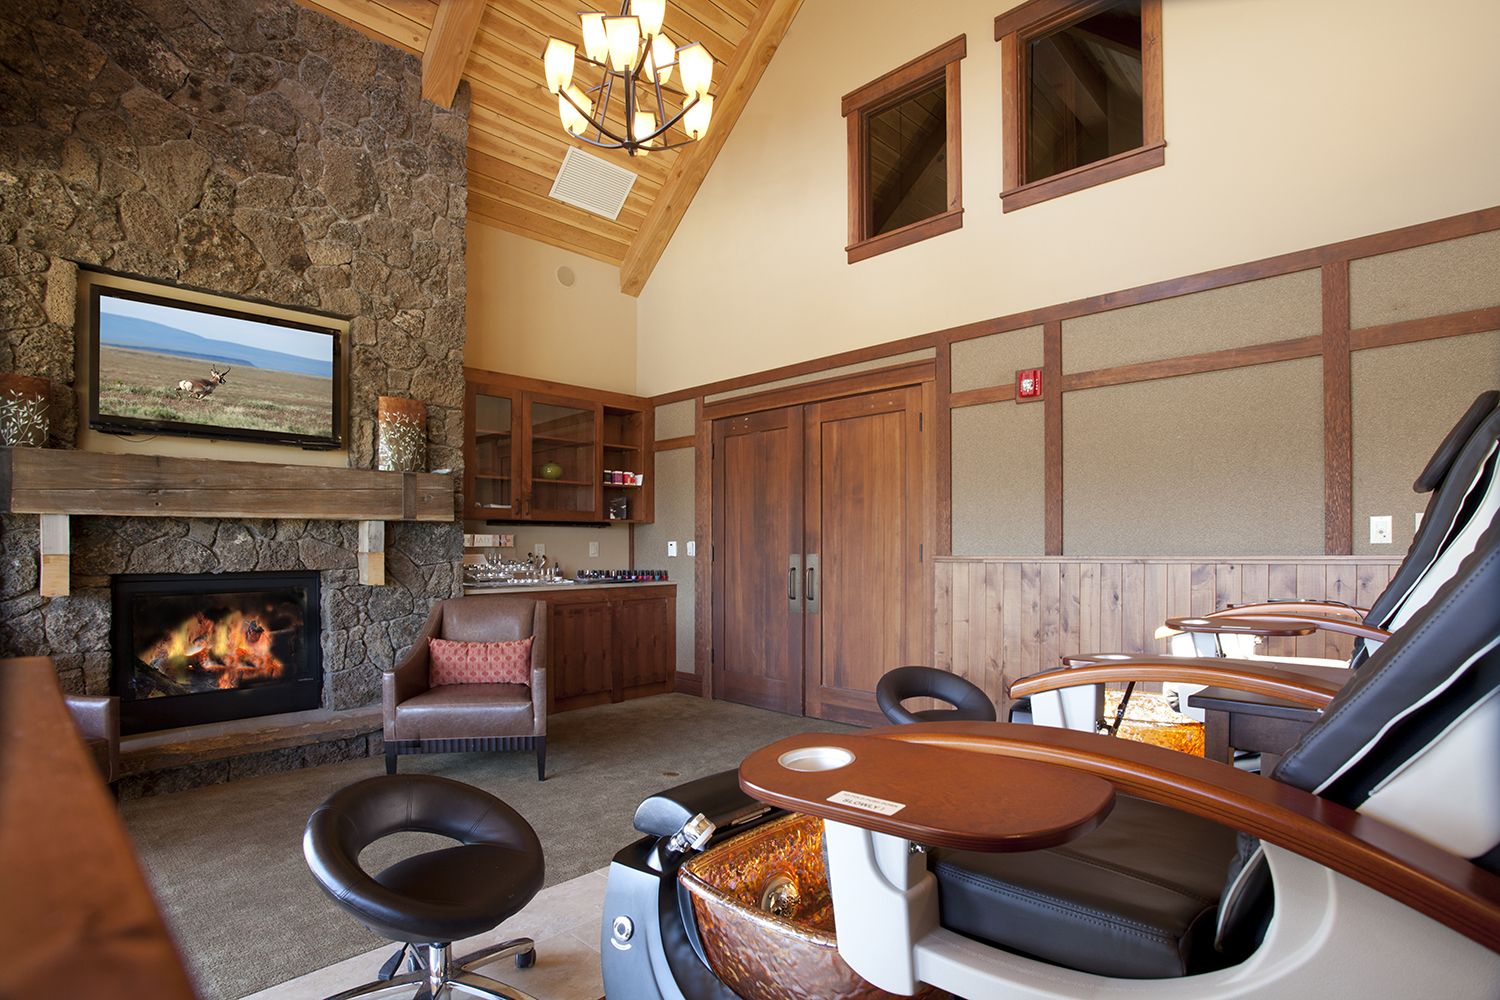 Guests can also receive relaxing hand and foot treatments, including manicures and pedicures.